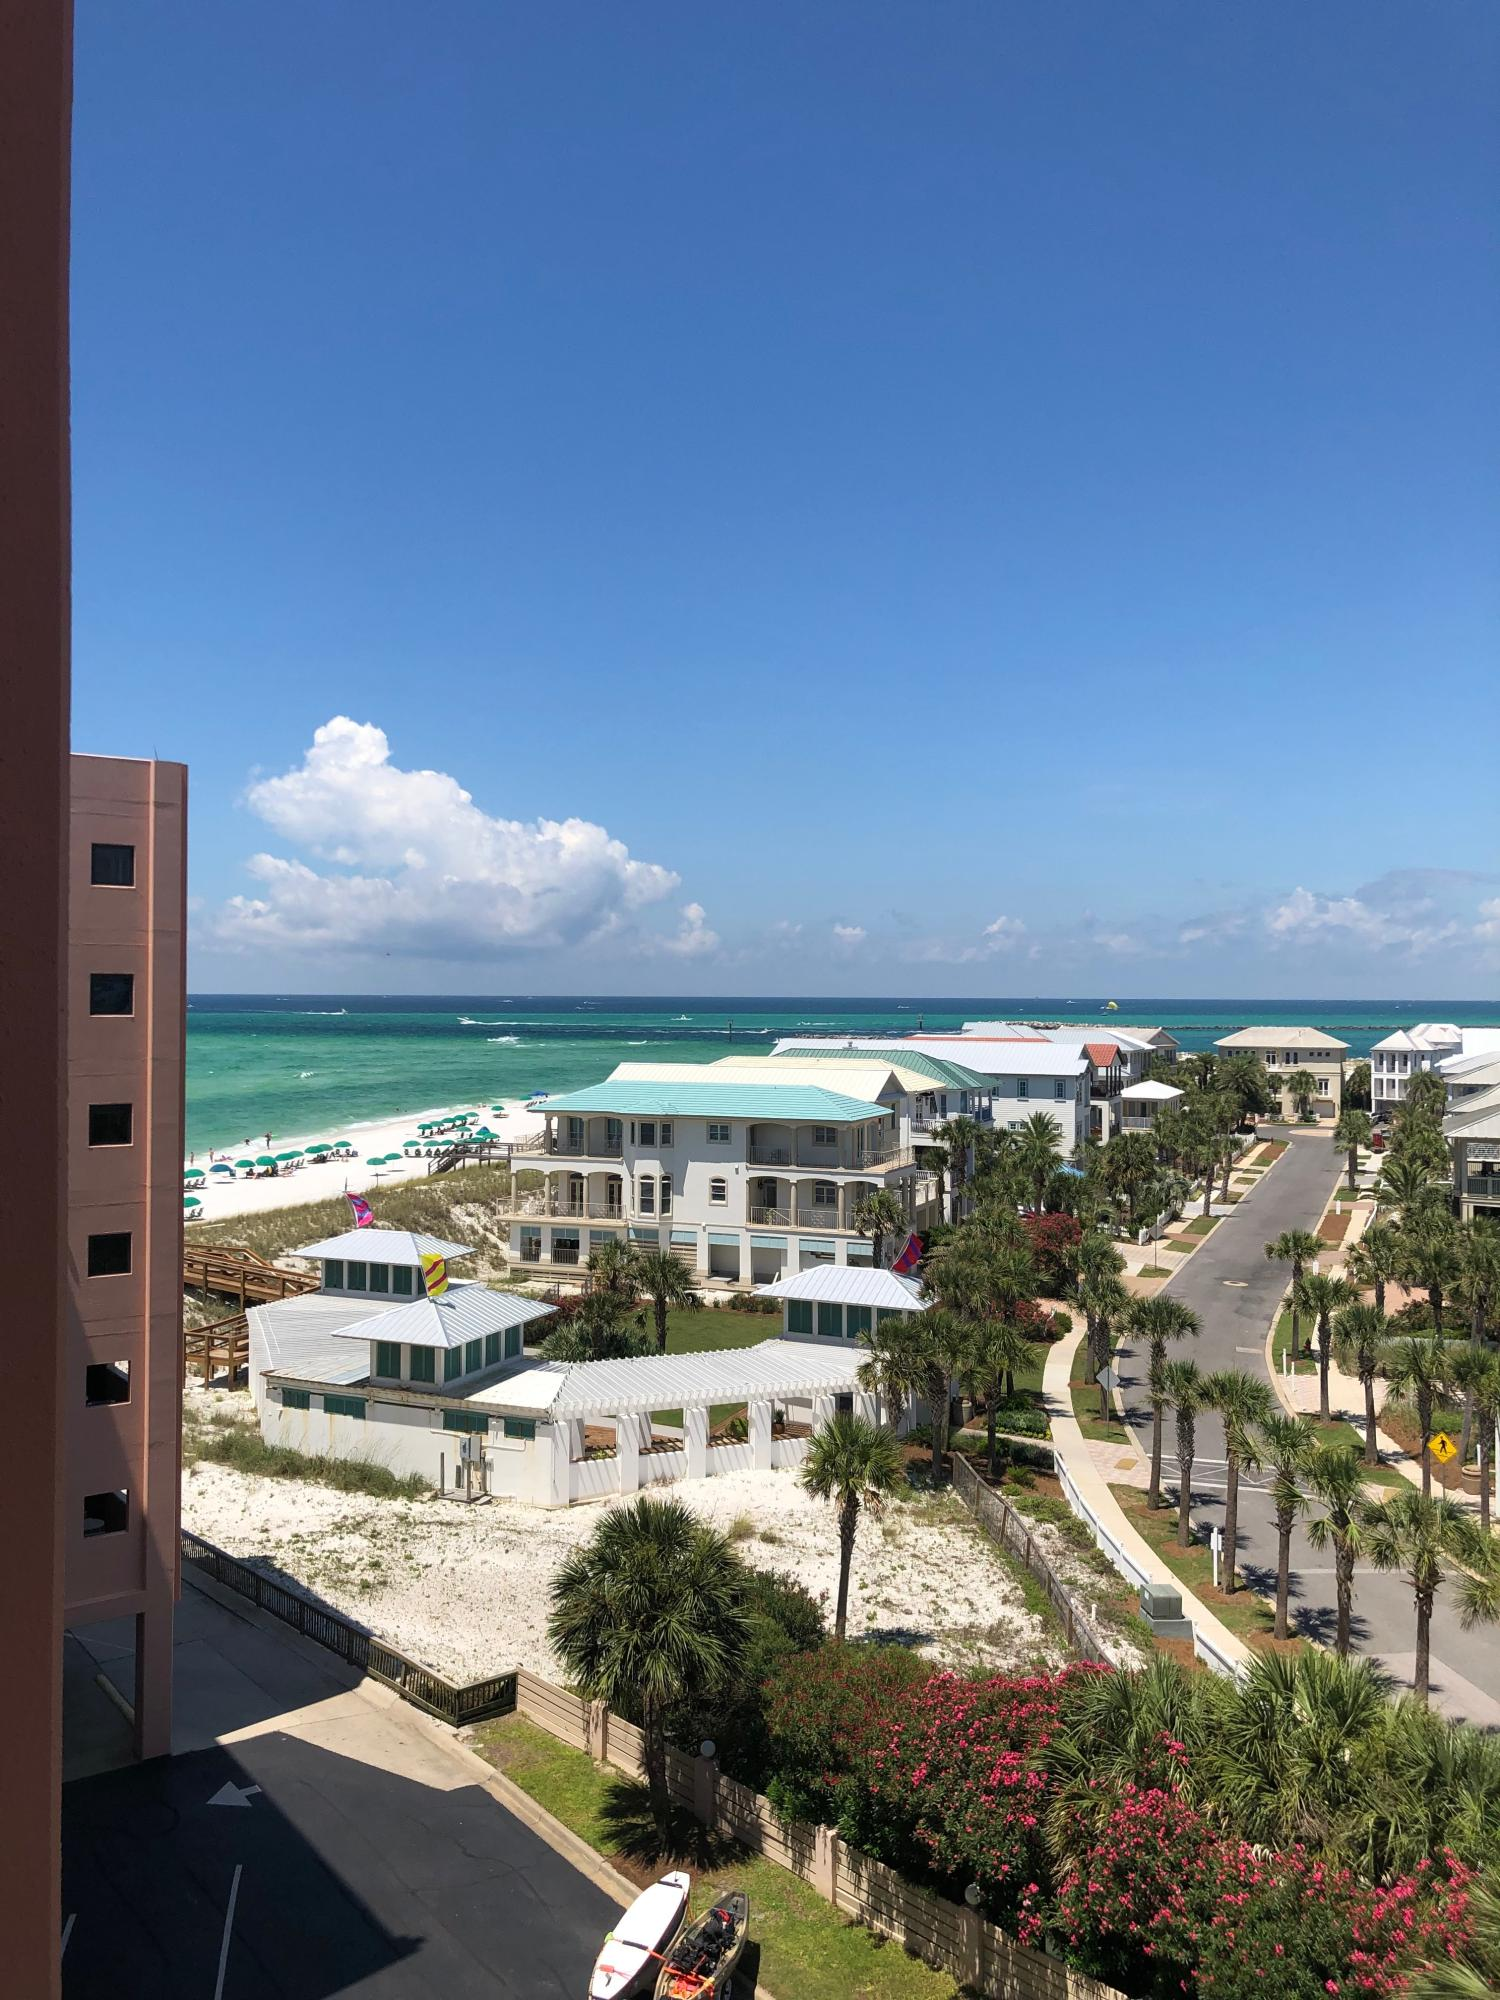 Fantastic Views and the Rental Income 2017 $26,060, 2018 $27,061 make 510A a BEST BUY   The 10 Bay affords expansive views of the Gulf, Jetties, Crab Island and Fort Walton.  Also at night you can catch fireworks over the harbor. Enjoy the open balcony with counter height furniture while watching the fishing boats go out in the morning to the Gulf. In the evening, watch the amazing sunsets on the balcony. The kitchen has stainless steal appliances, ice maker, Keurig or coffee pot, and Silestone Quartz counters. The bathroom has a grab bar in the combination tub and shower. The bedroom and living room are carpeted. The living room has a wall of mirrors and a Queen Sleeper. Enjoy watching TV on the 42'' Led HDTV and VCR in the living room. Relax on the  King Bed and watch 32'' LED HDTV and VCR. You will enjoy your stay in this comfortable condo. The unit has New code compliant EFCO doors and windows. Amenities include a fitness room, heated pool, hot tub, 3500 sq. ft. pavilion w/BBQ grills, tennis courts, shuffleboard & 900 feet of pristine white beach right on the Gulf of Mexico. Take a short walk to the jetties for fishing & a cove for snorkeling. Jetty East offers covered parking. The Owners room has been remodeled and can be rented for weddings, guest gatherings and owner functions. Gated community with 24/7 Security. Buyer to confirm any measurements/information they deem important.